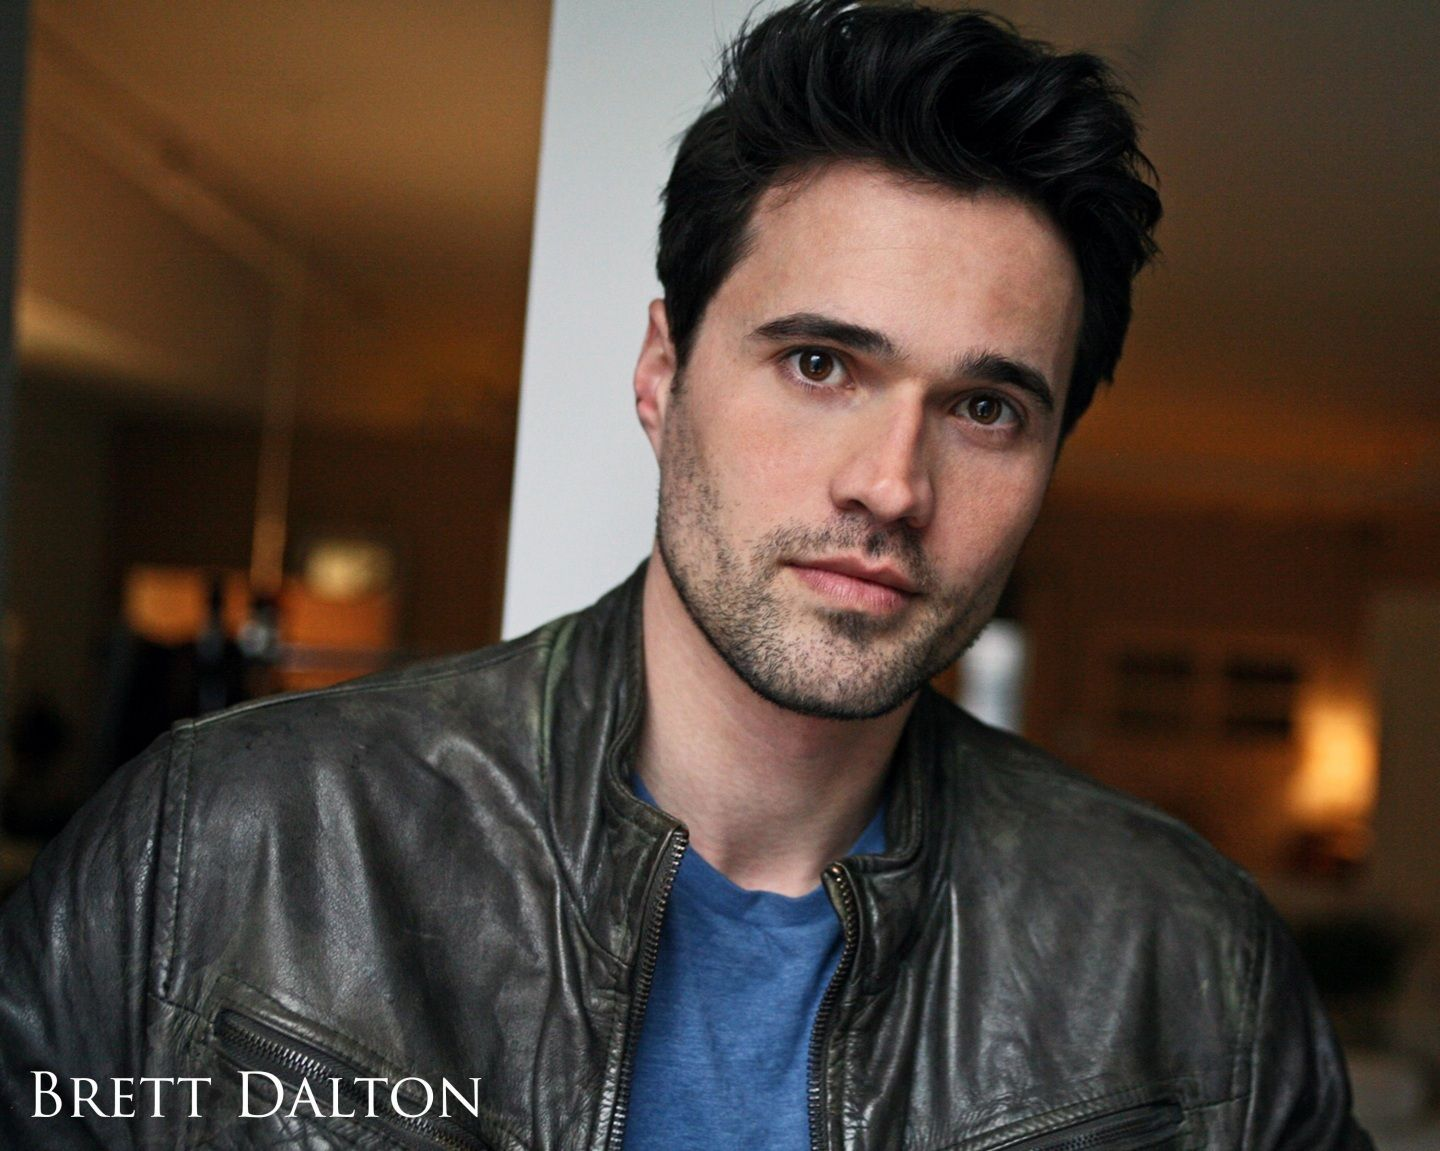 brett dalton height